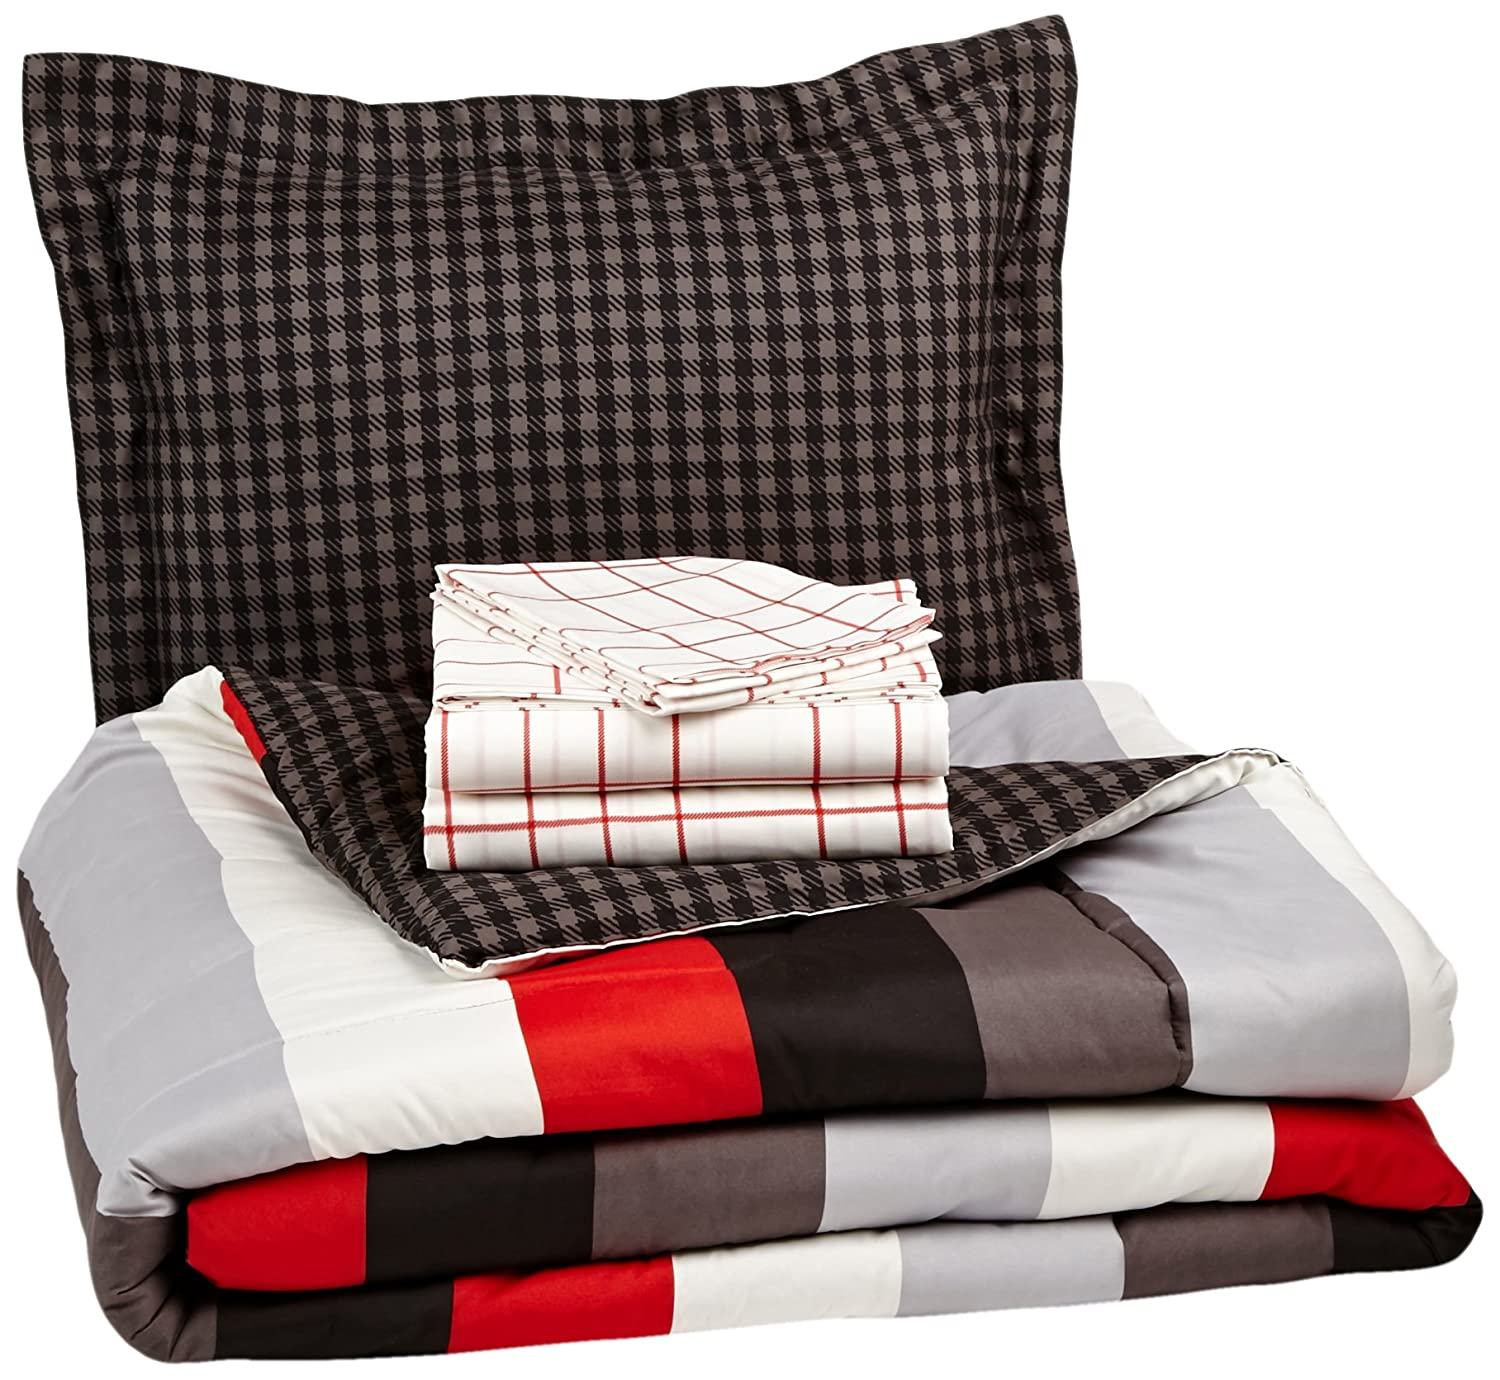 Pinzon by Amazon 5-Piece Bed In A Bag - Twin, Red Simple Stripe